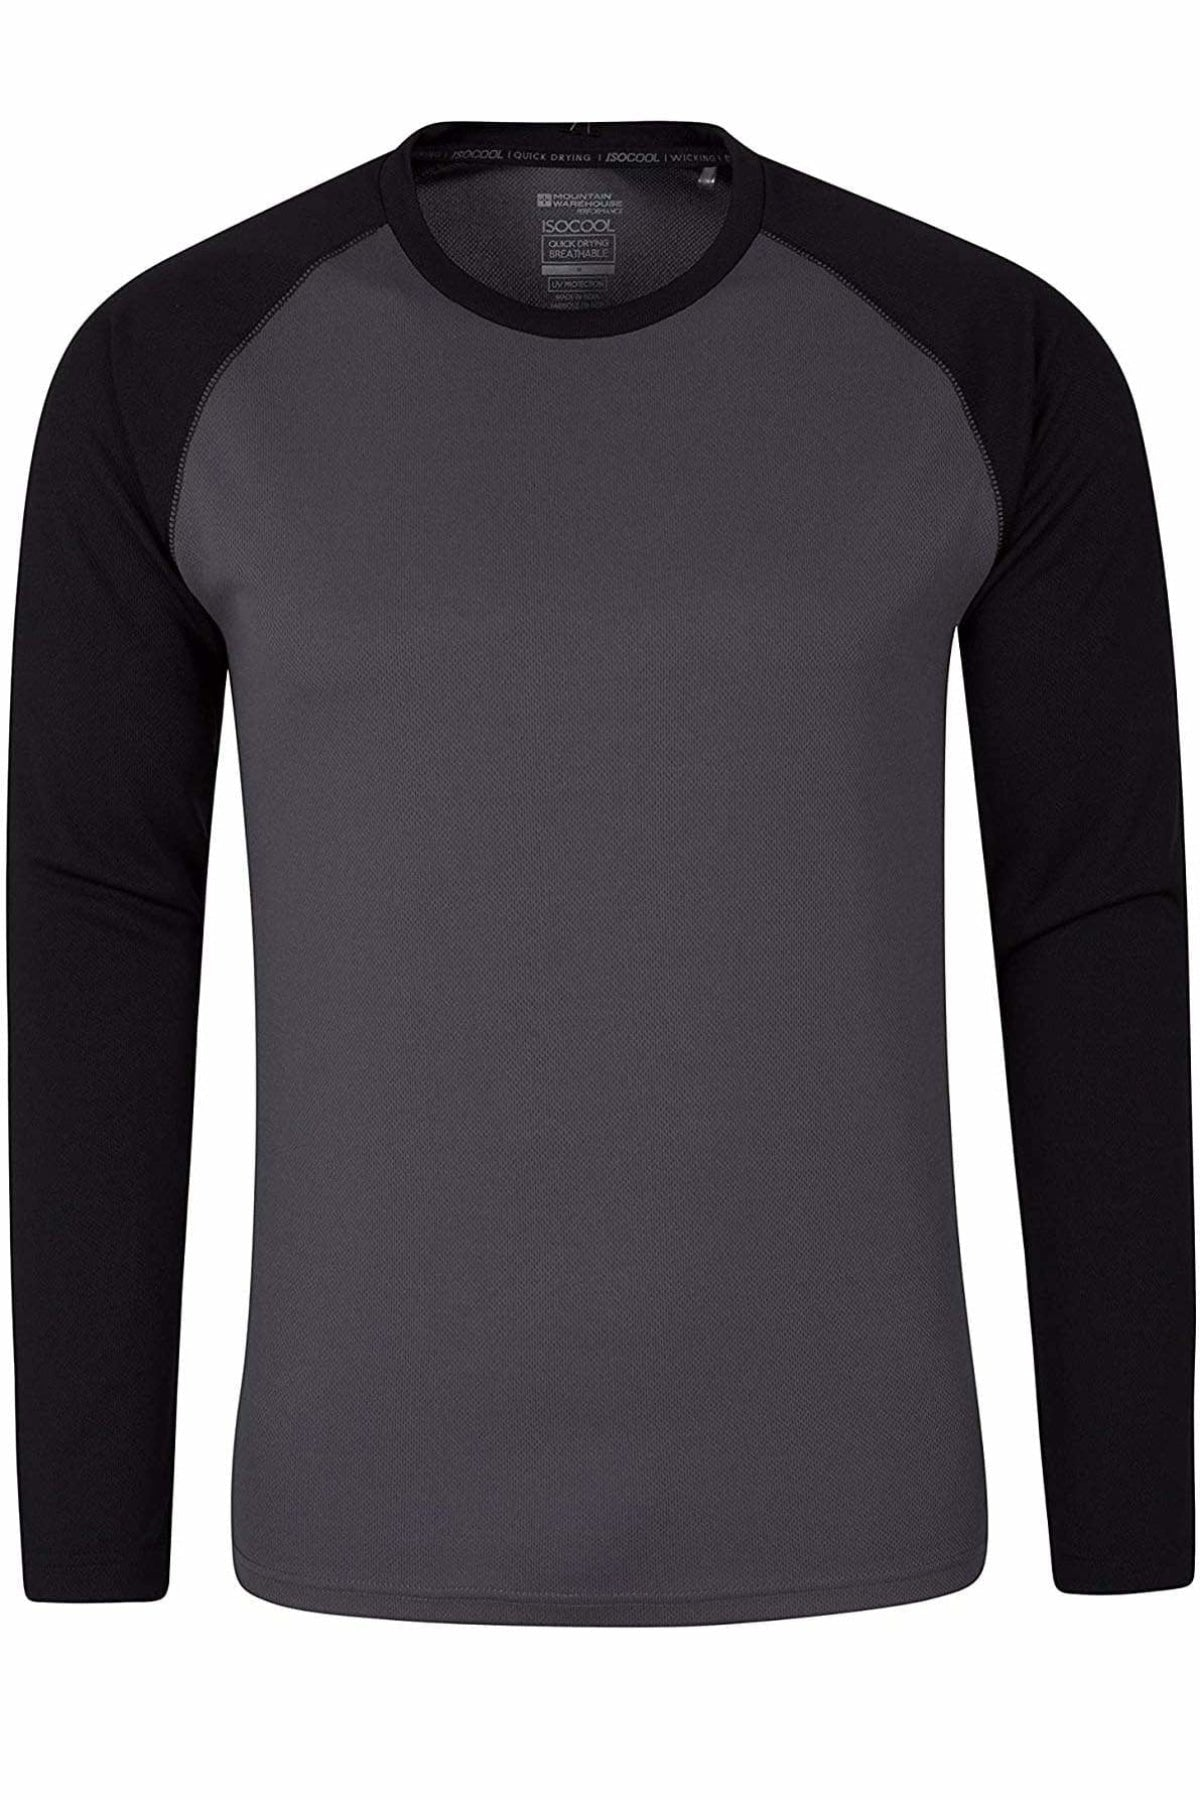 Mountain Warehouse Two Tone Long Sleeve Active Top | S / Grey/Black Secret Label